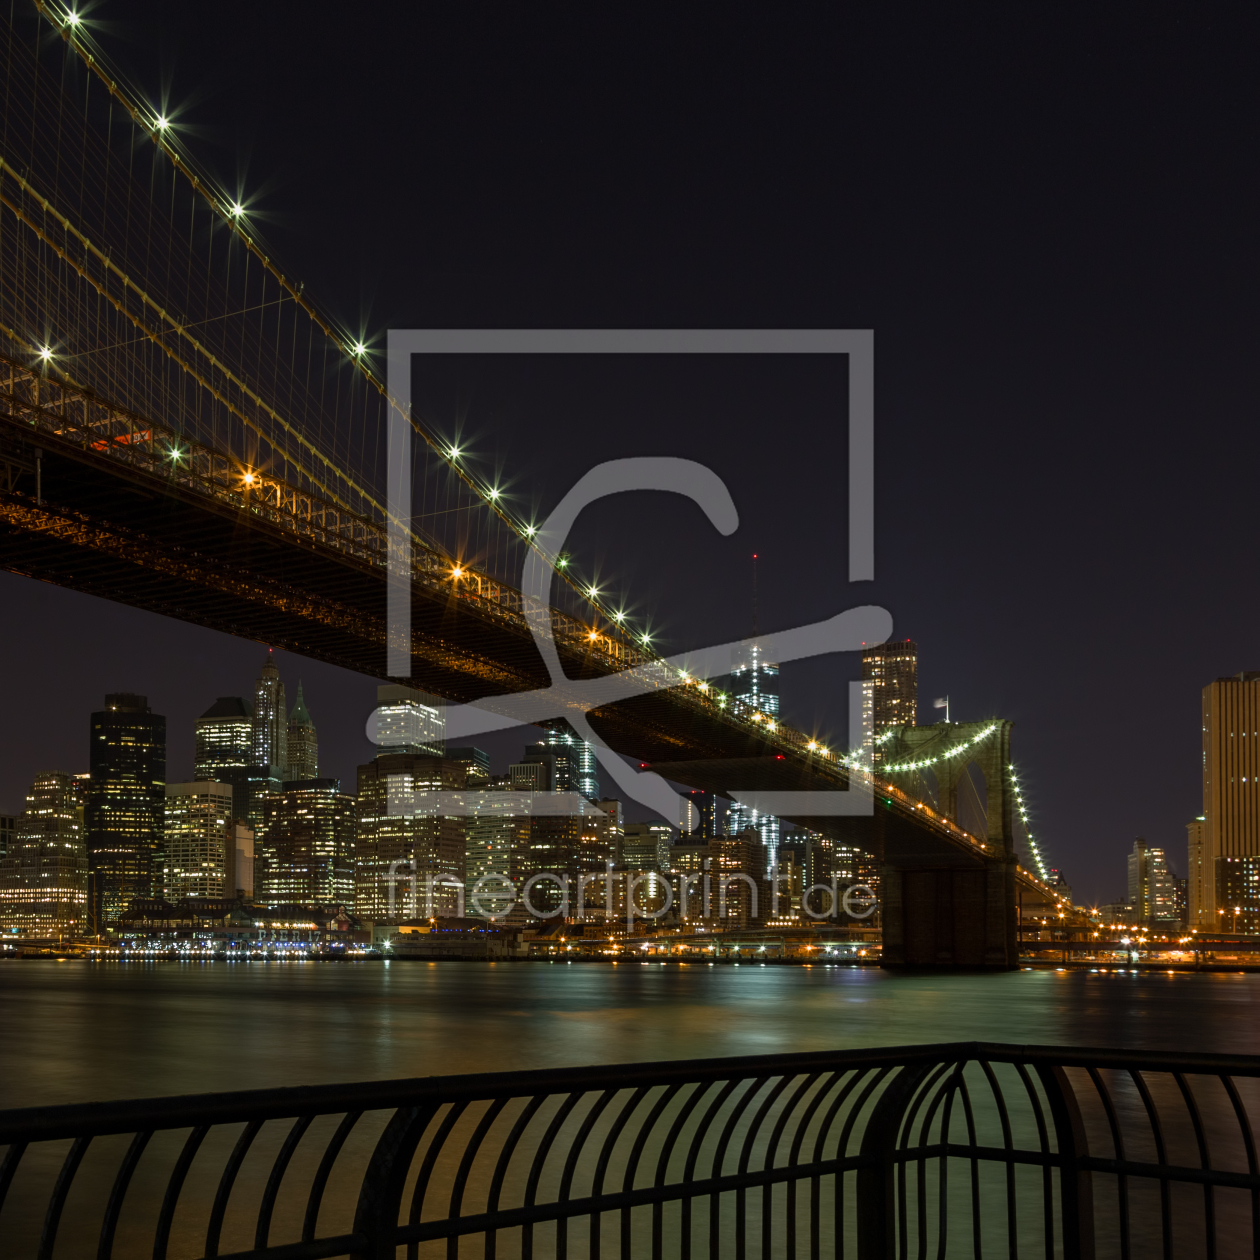 brooklyn bridge at night 1 1 als leinwand von tomkli er. Black Bedroom Furniture Sets. Home Design Ideas